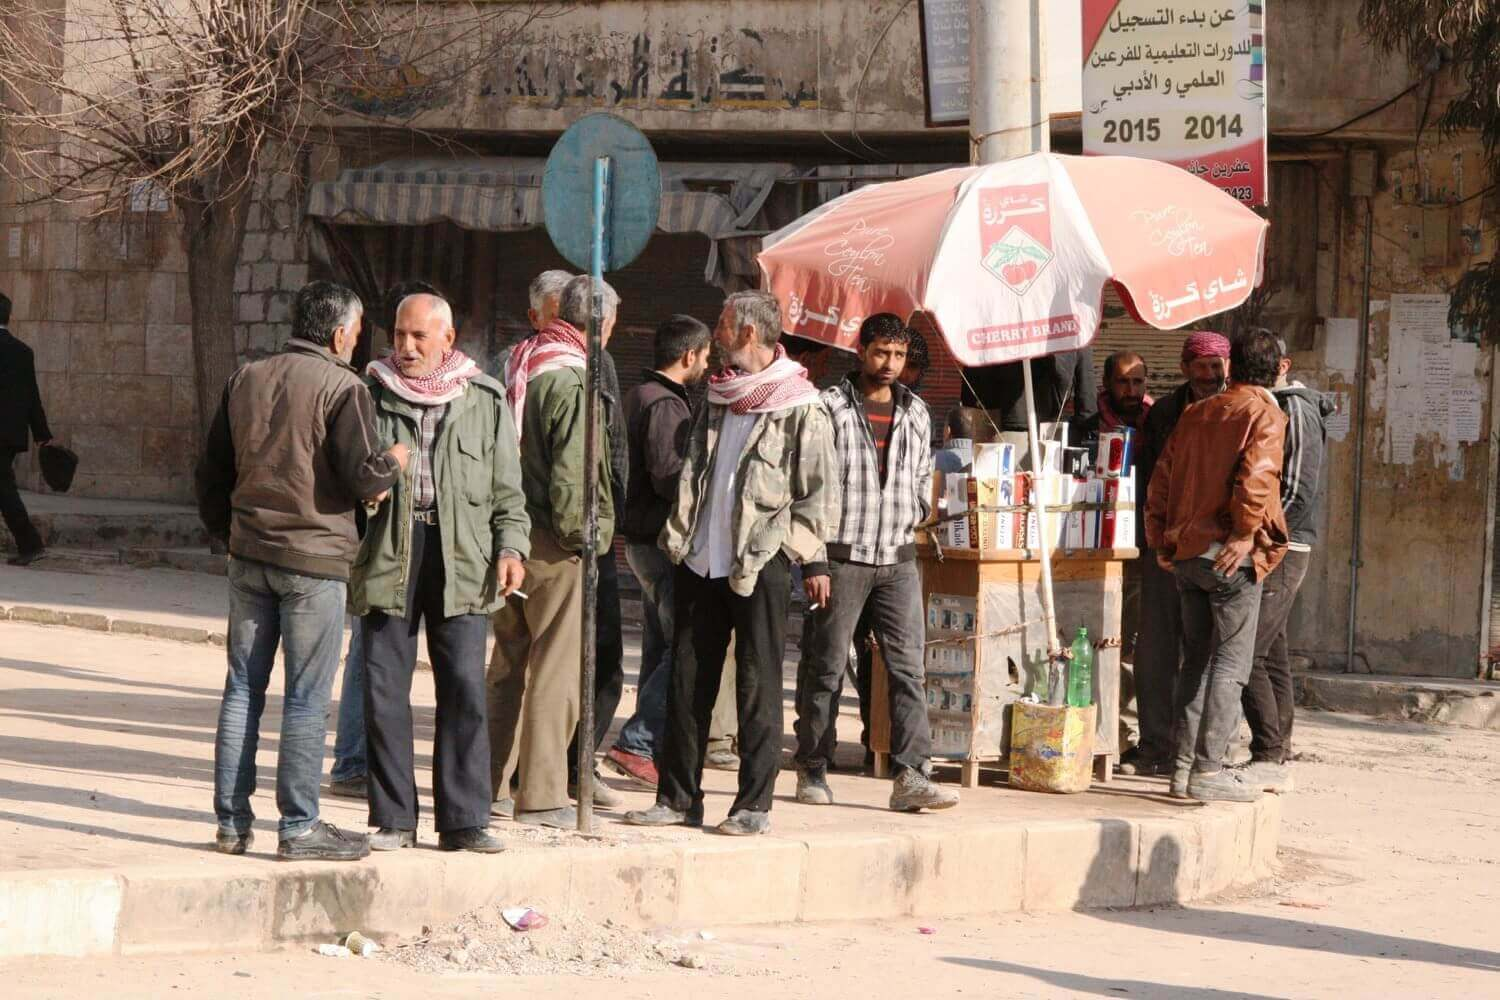 Day laborers from Aleppo Efrîn, February 3, 2015